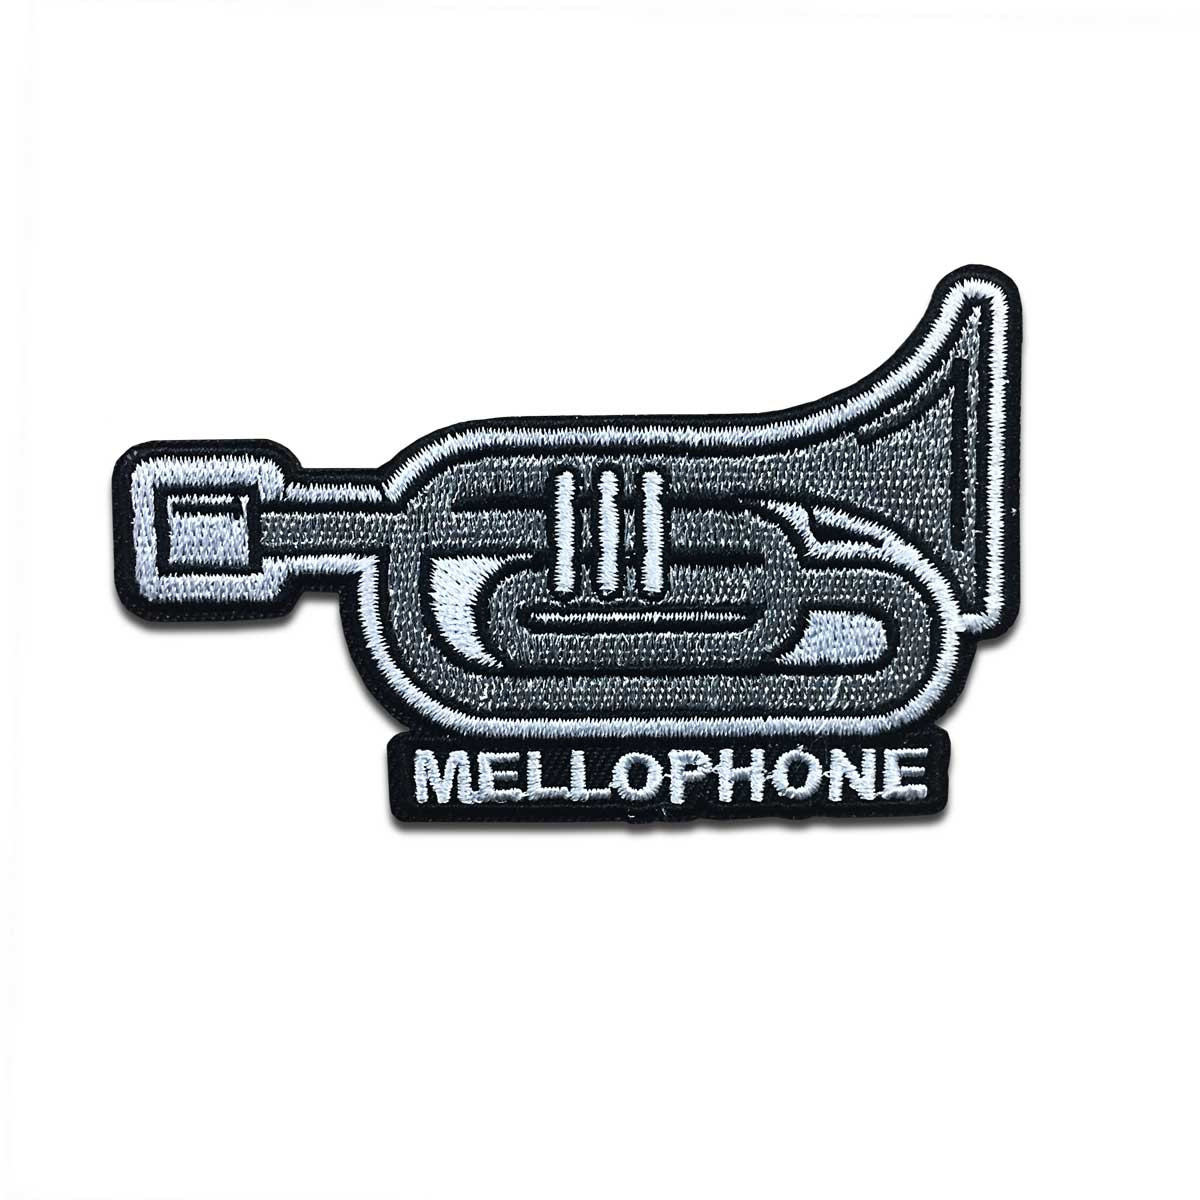 Mellophone Instrument Patch